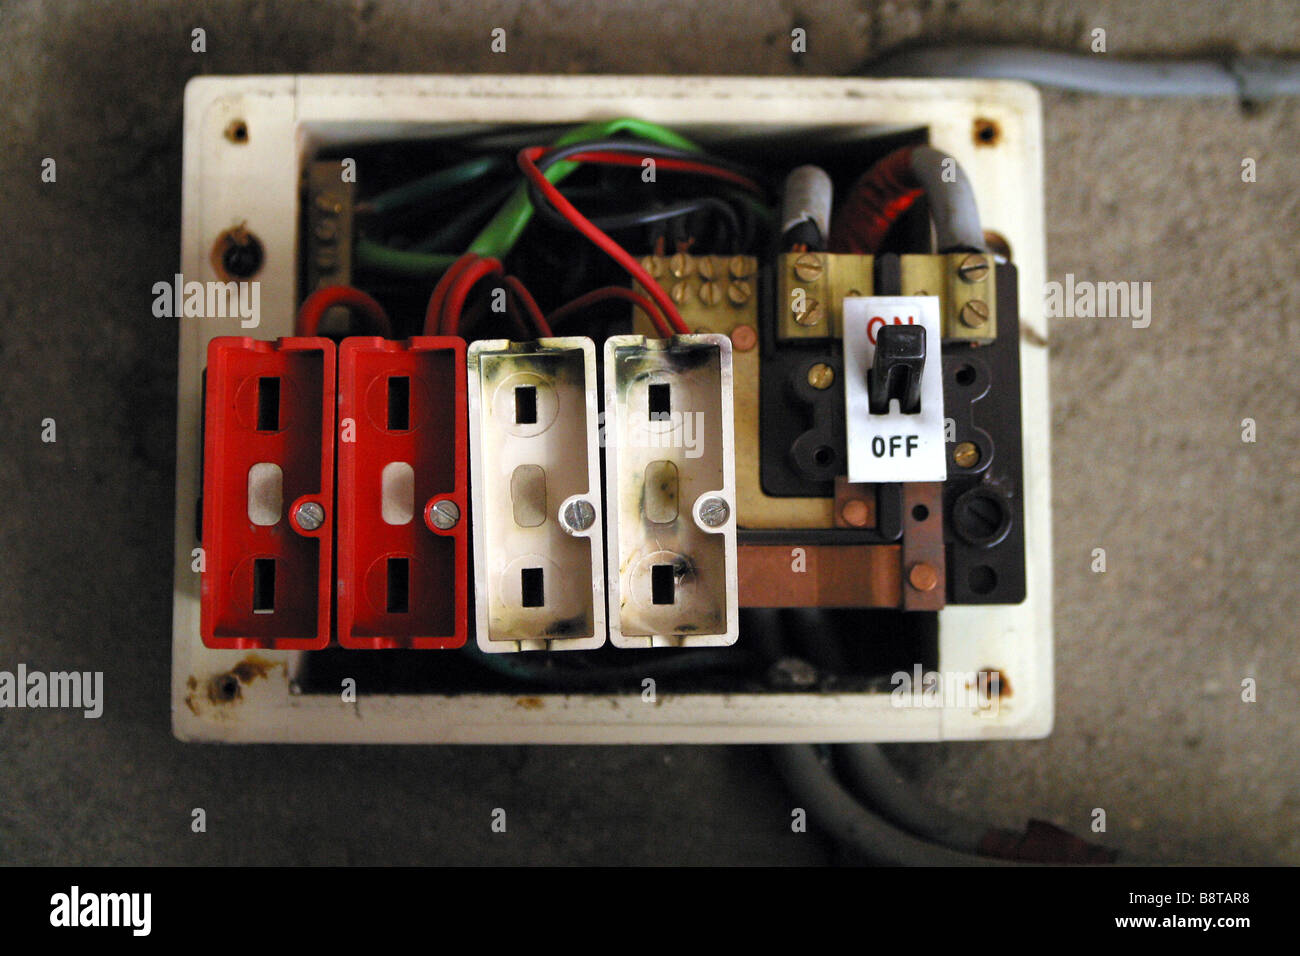 Old House Fuse Box Wiring Diagrams Archive Of Automotive In Home Diagram Schematics Rh Thyl Co Uk